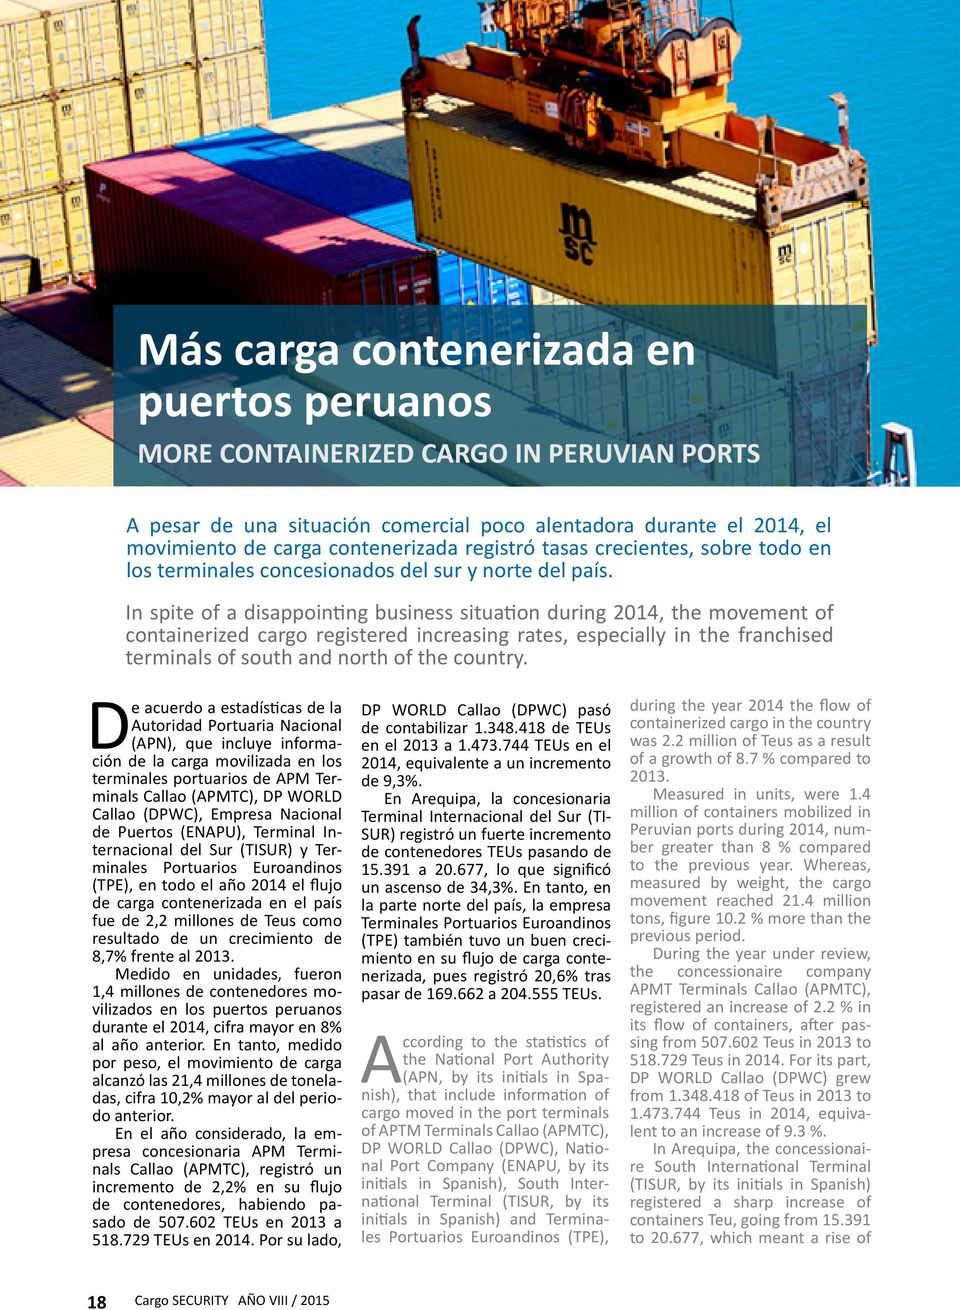 In spite of a disappointing business situation during 2014, the movement of containerized cargo registered increasing rates, especially in the franchised terminals of south and north of the country.